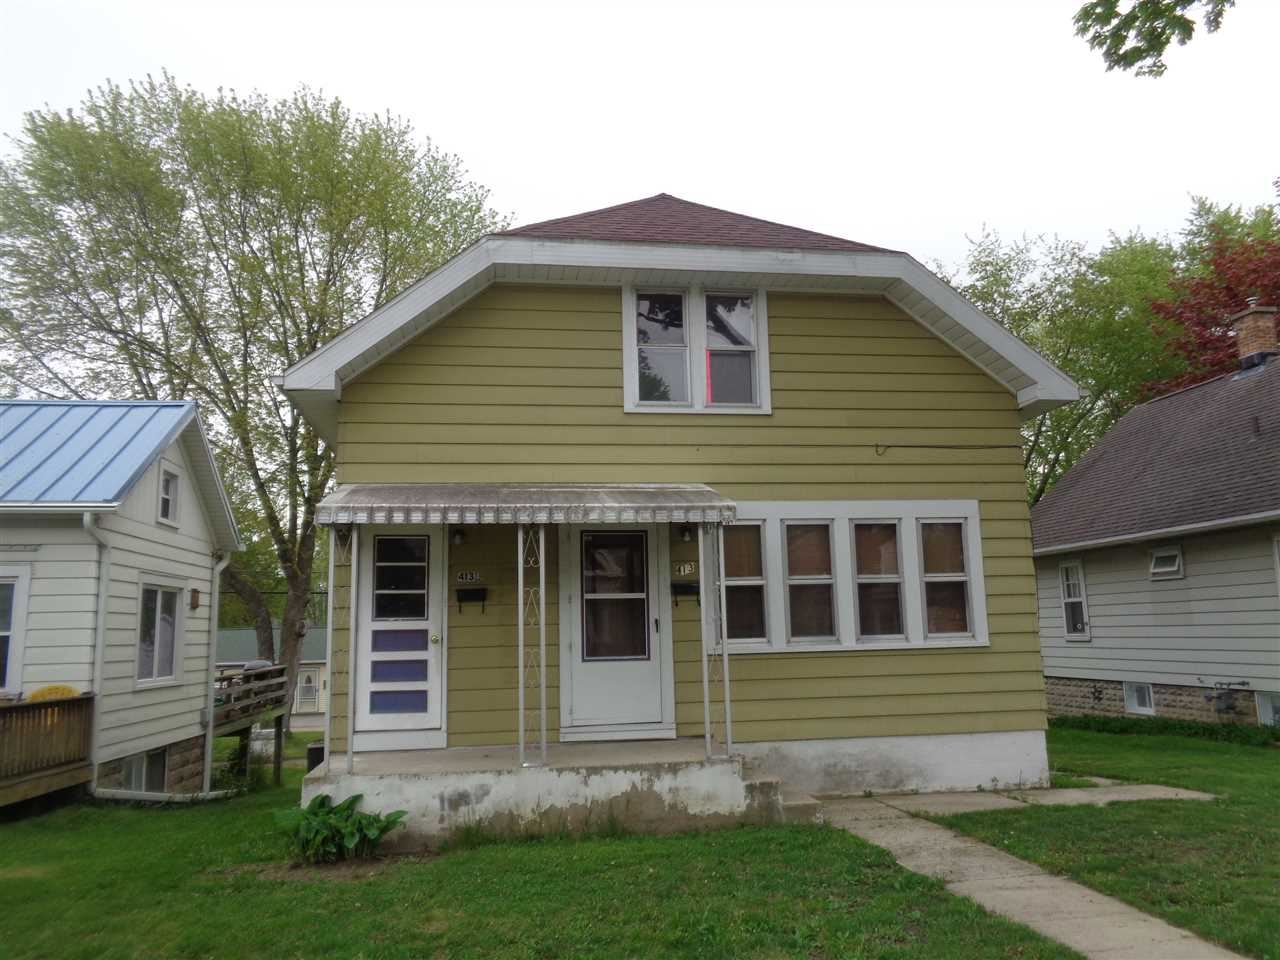 413 - 413 1\/2 S Hubbard St, Horicon, WI 53032 - #: 1883961